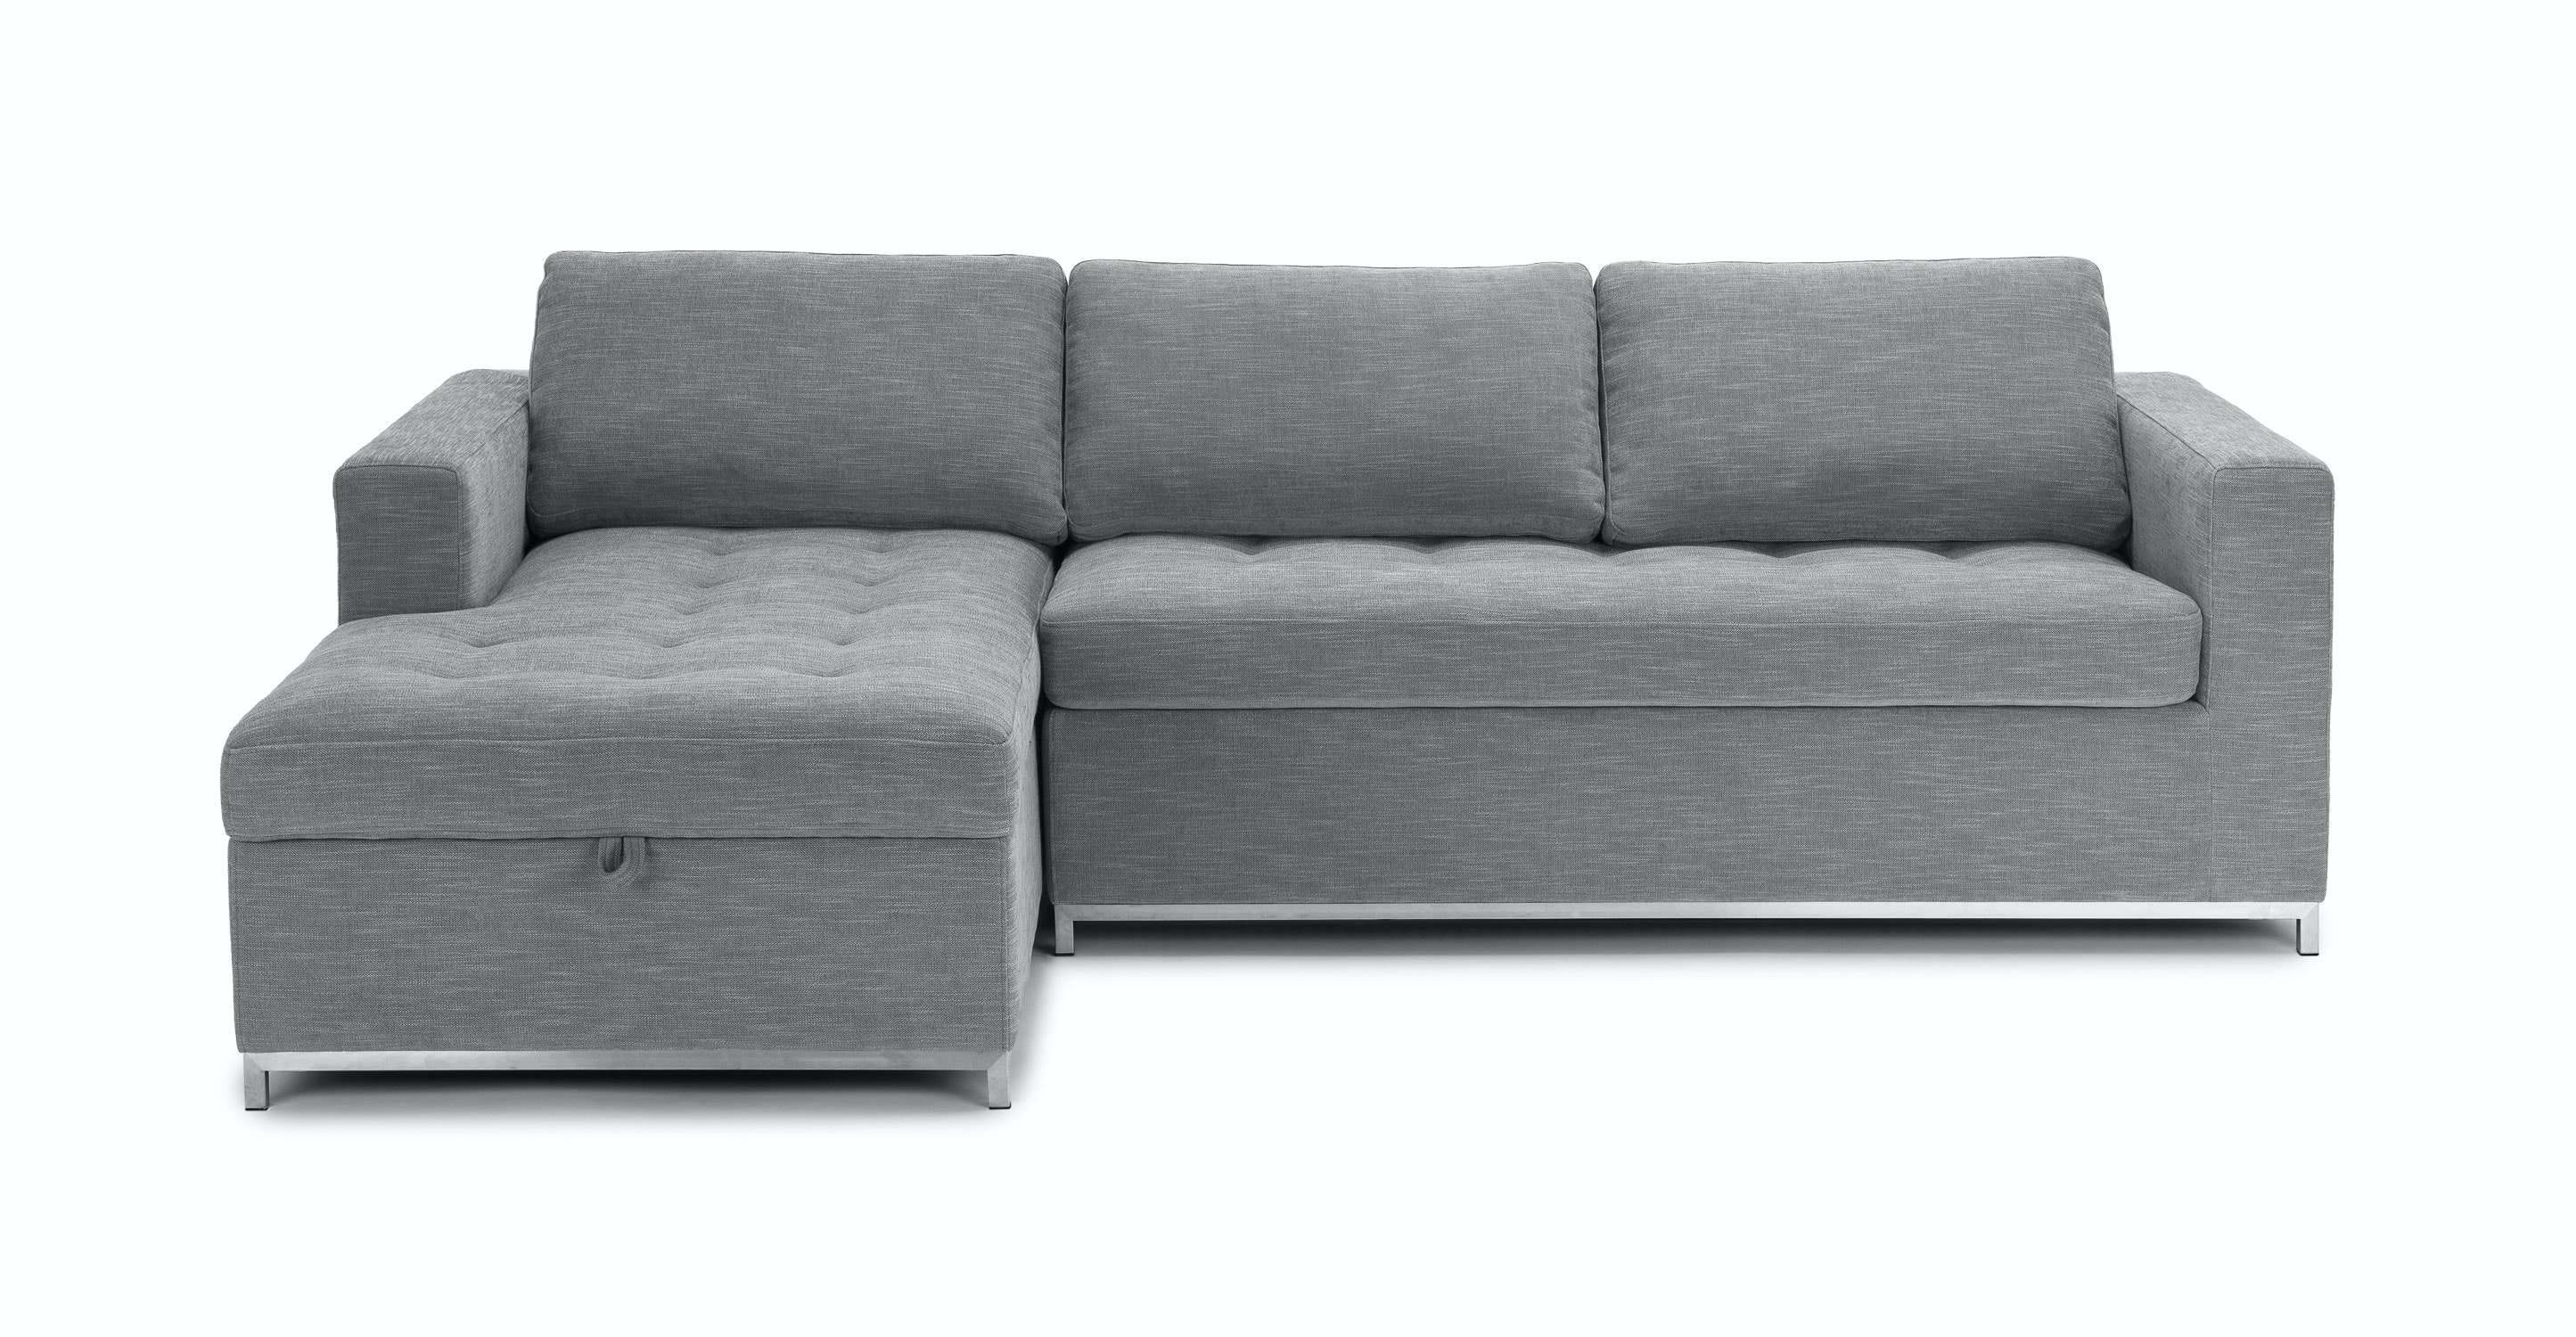 Sectional Sofa Bed | Soma Dawn Gray Left Sofa Bed | Article